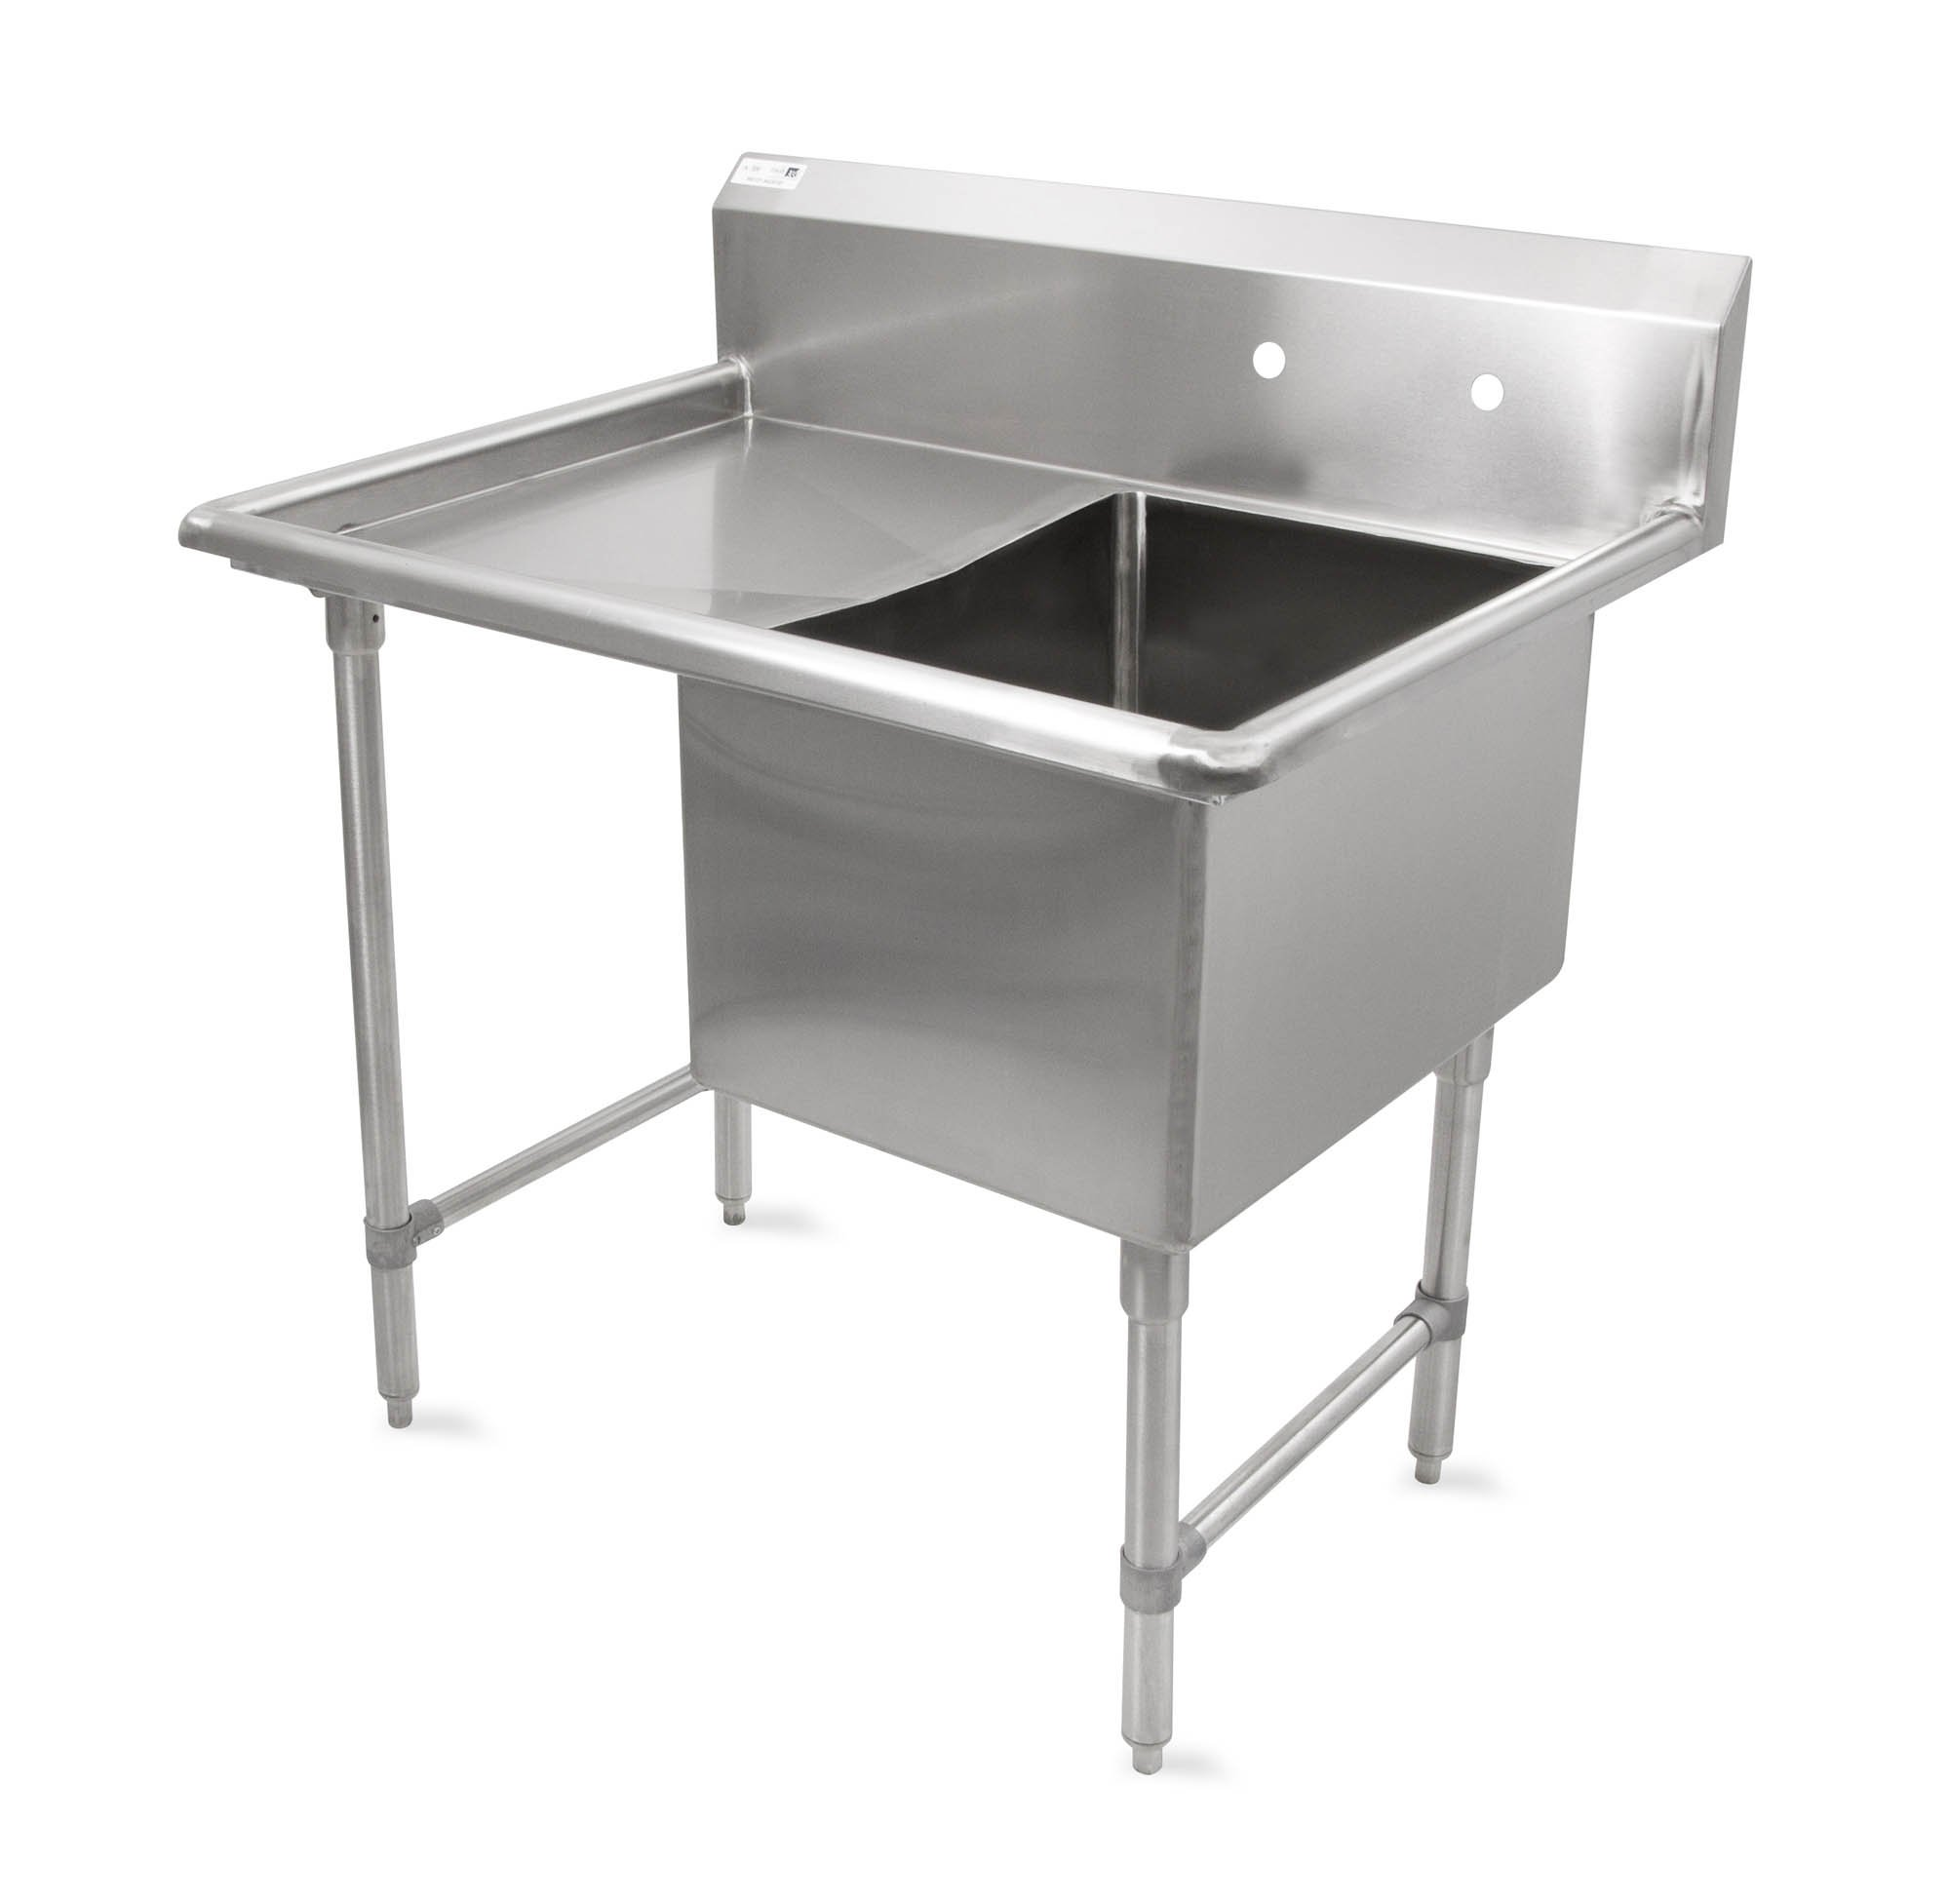 John Boos B Series Stainless Steel Sink, 14'' Deep Bowl, 1 Compartment, 18'' Left Hand Side Drainboard, 40'' Length x 23-1/2'' Width